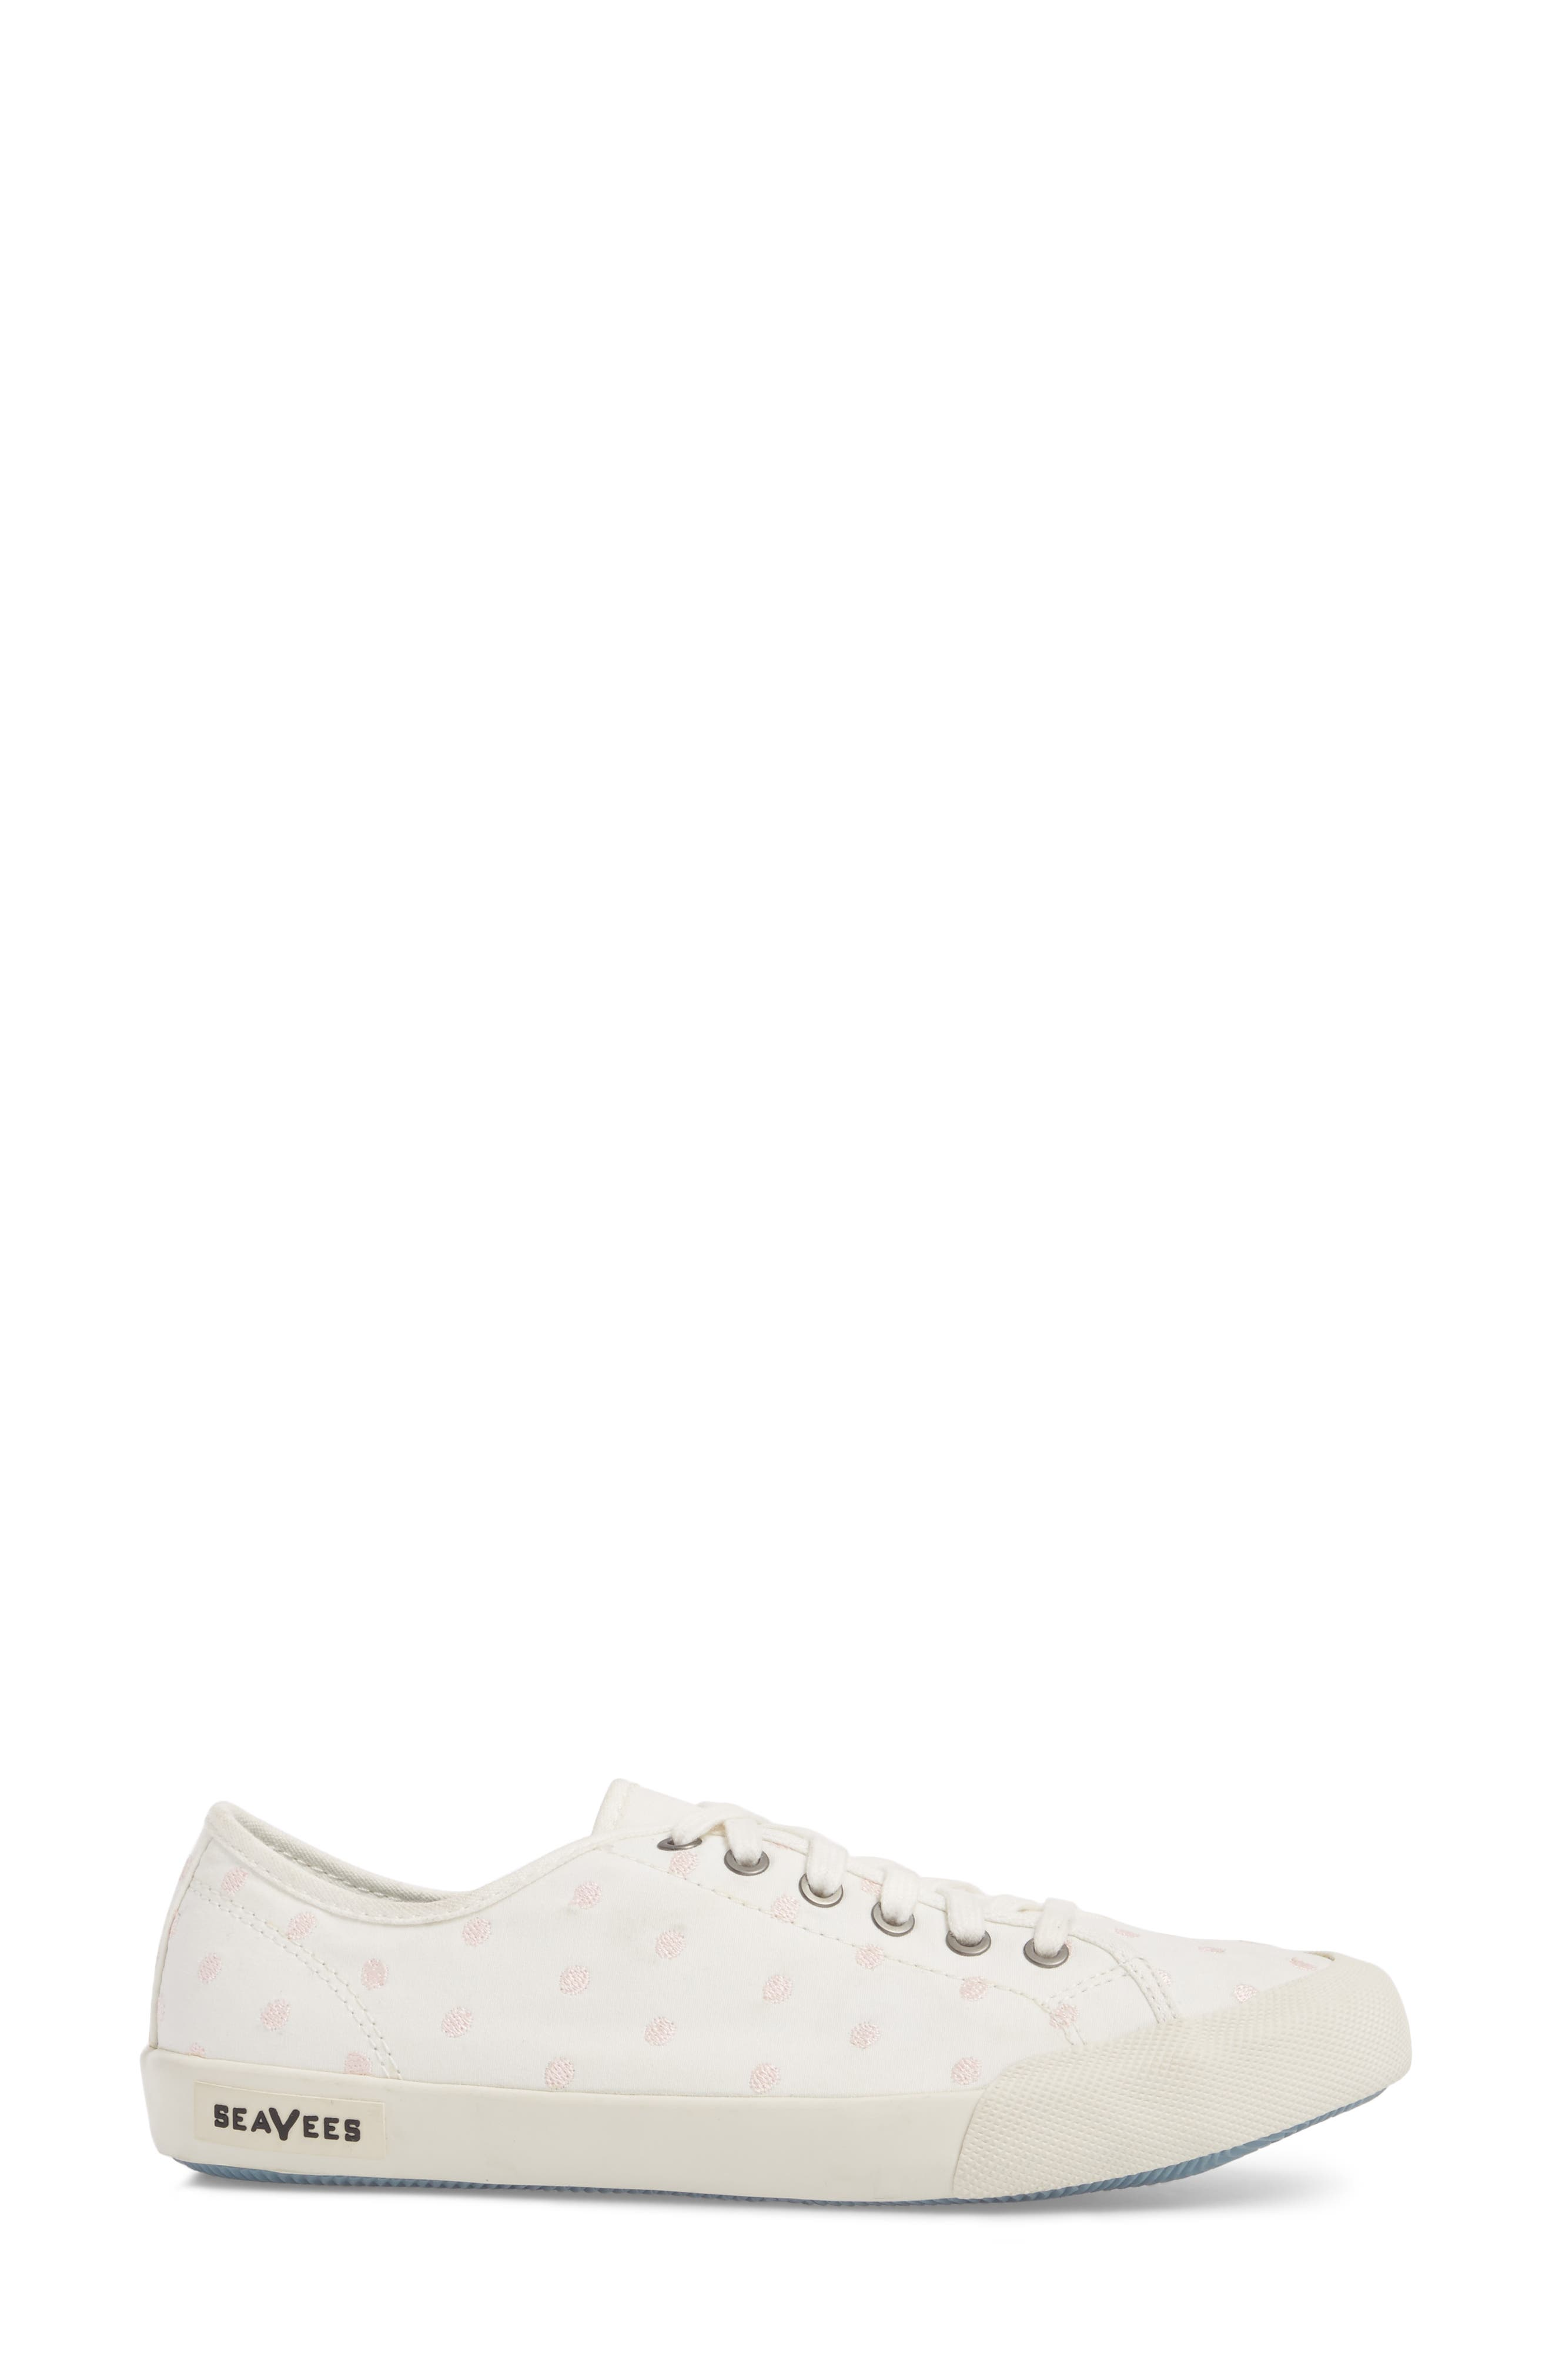 Monterey Embroidered Low Top Sneaker,                             Alternate thumbnail 3, color,                             PEARL